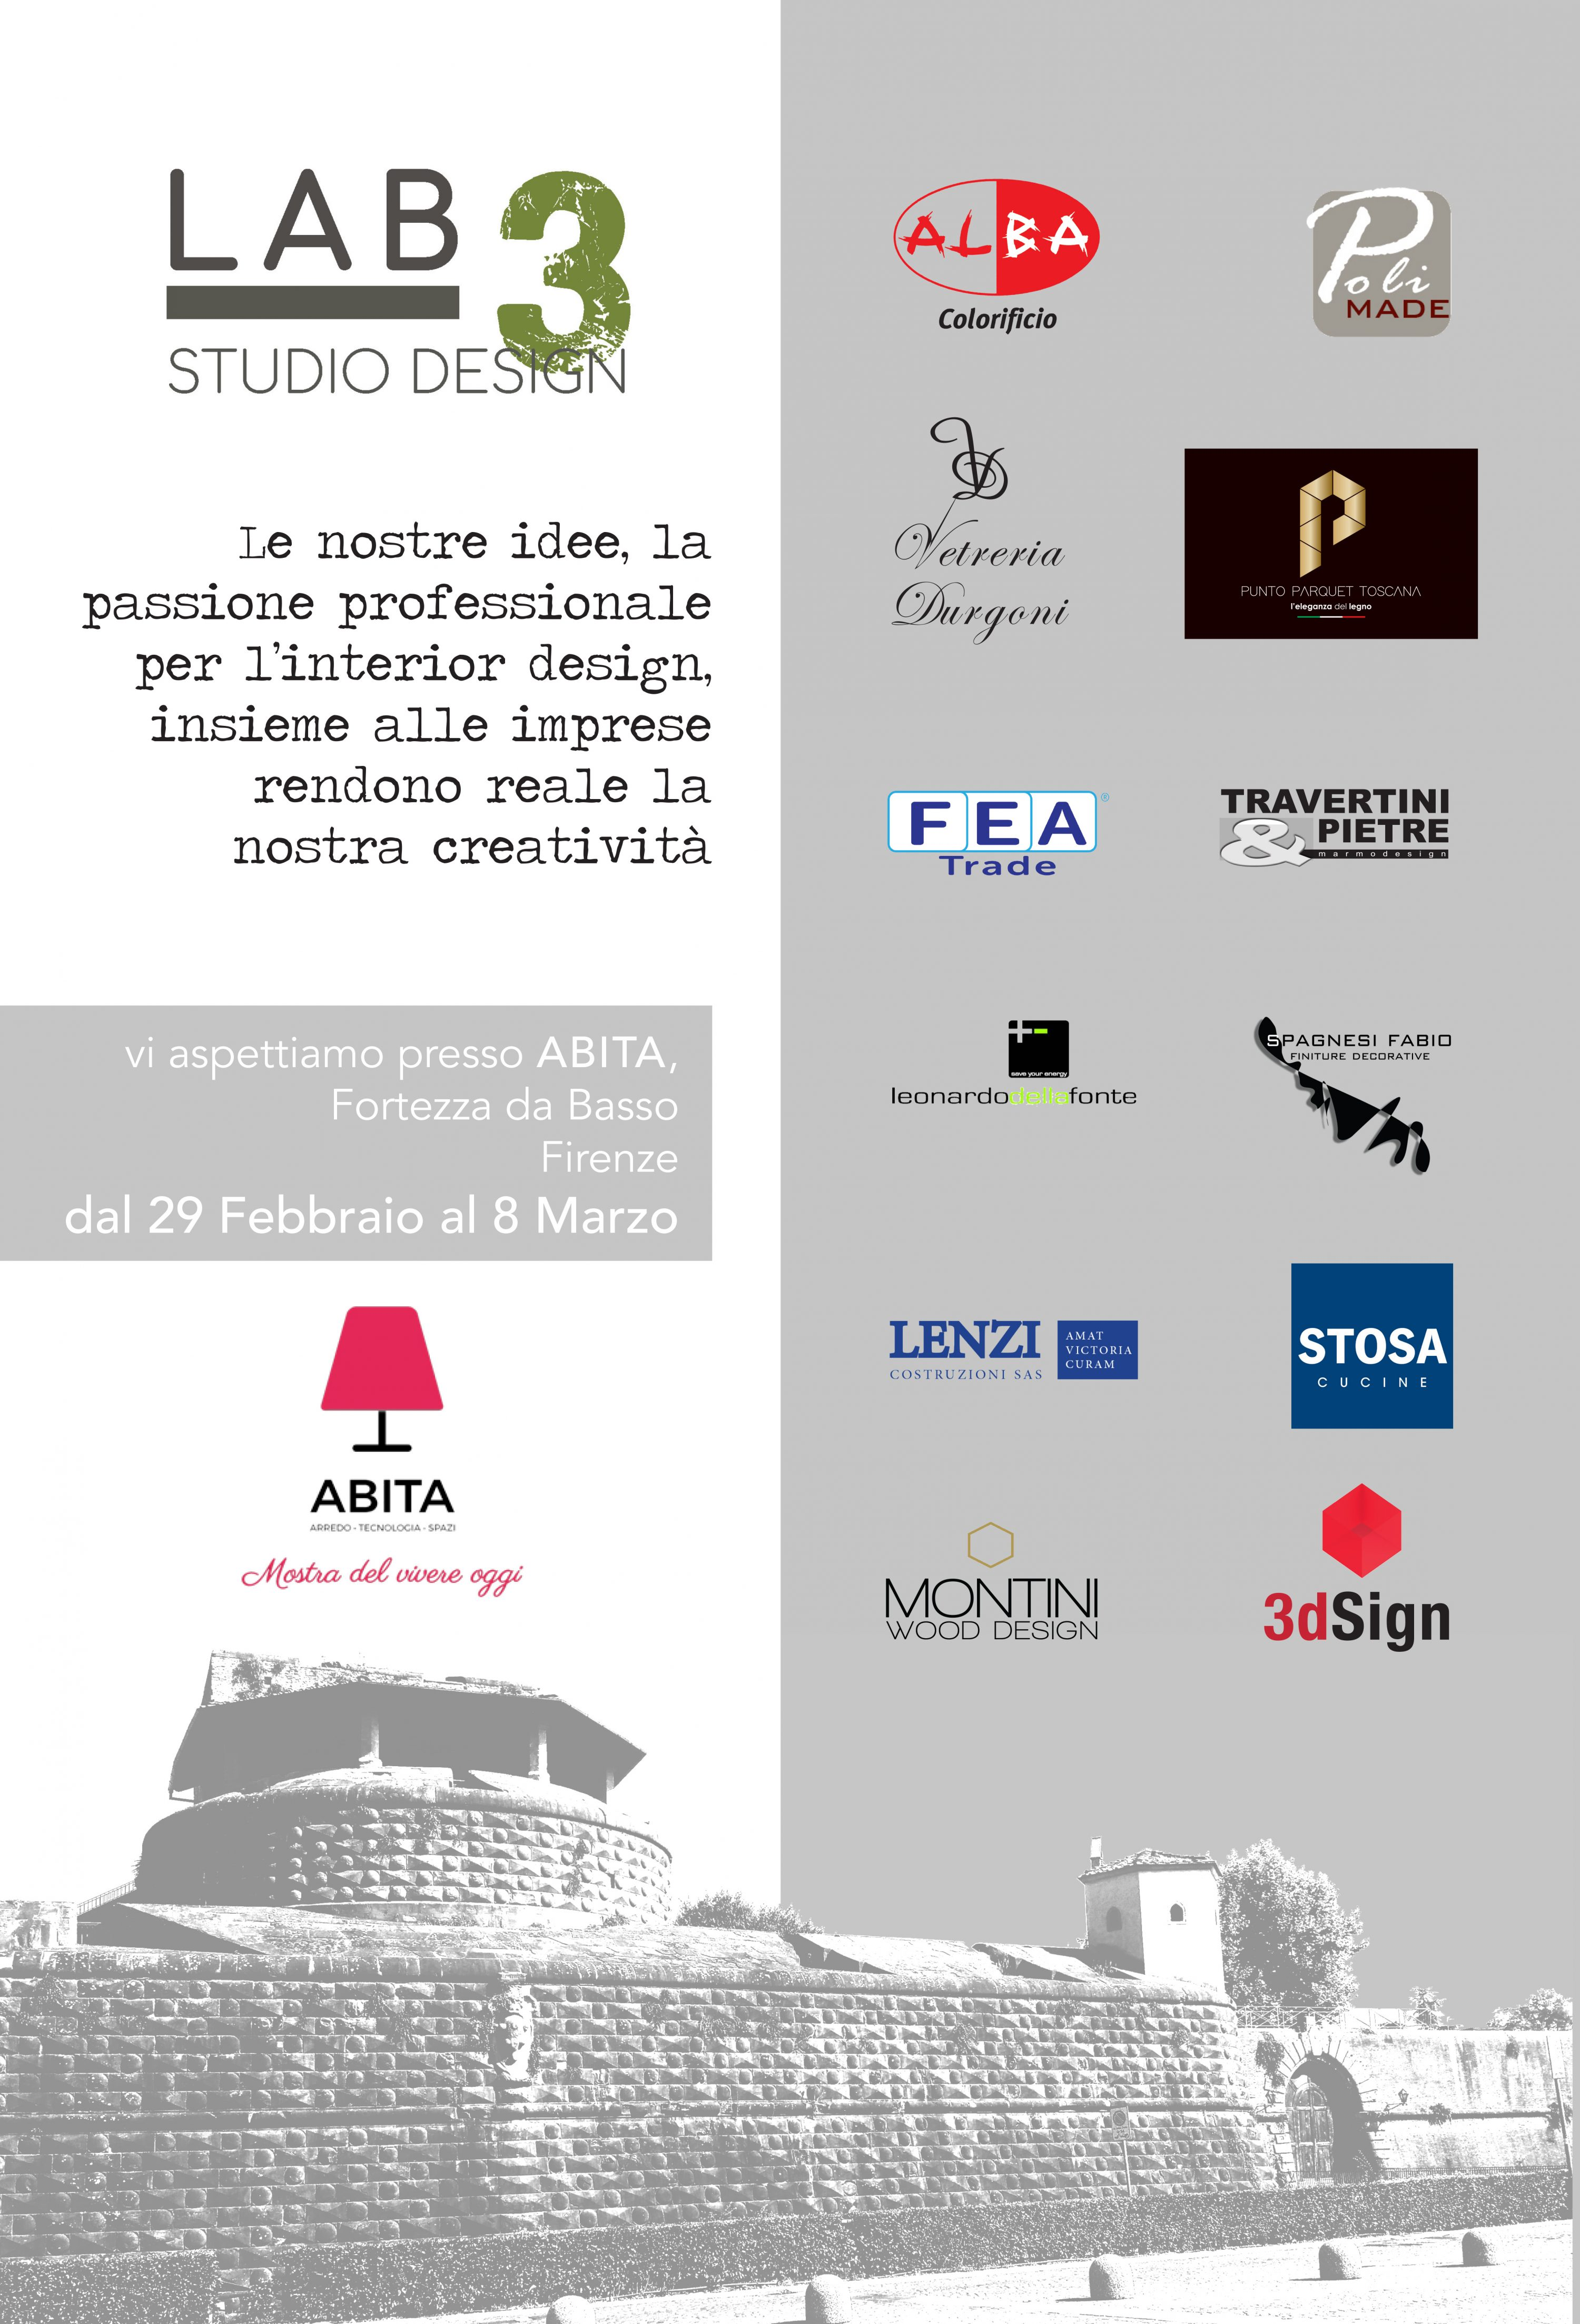 flyer LAB 3 STUDIO DESIGN . Fiera ABITA  2020 Firenze